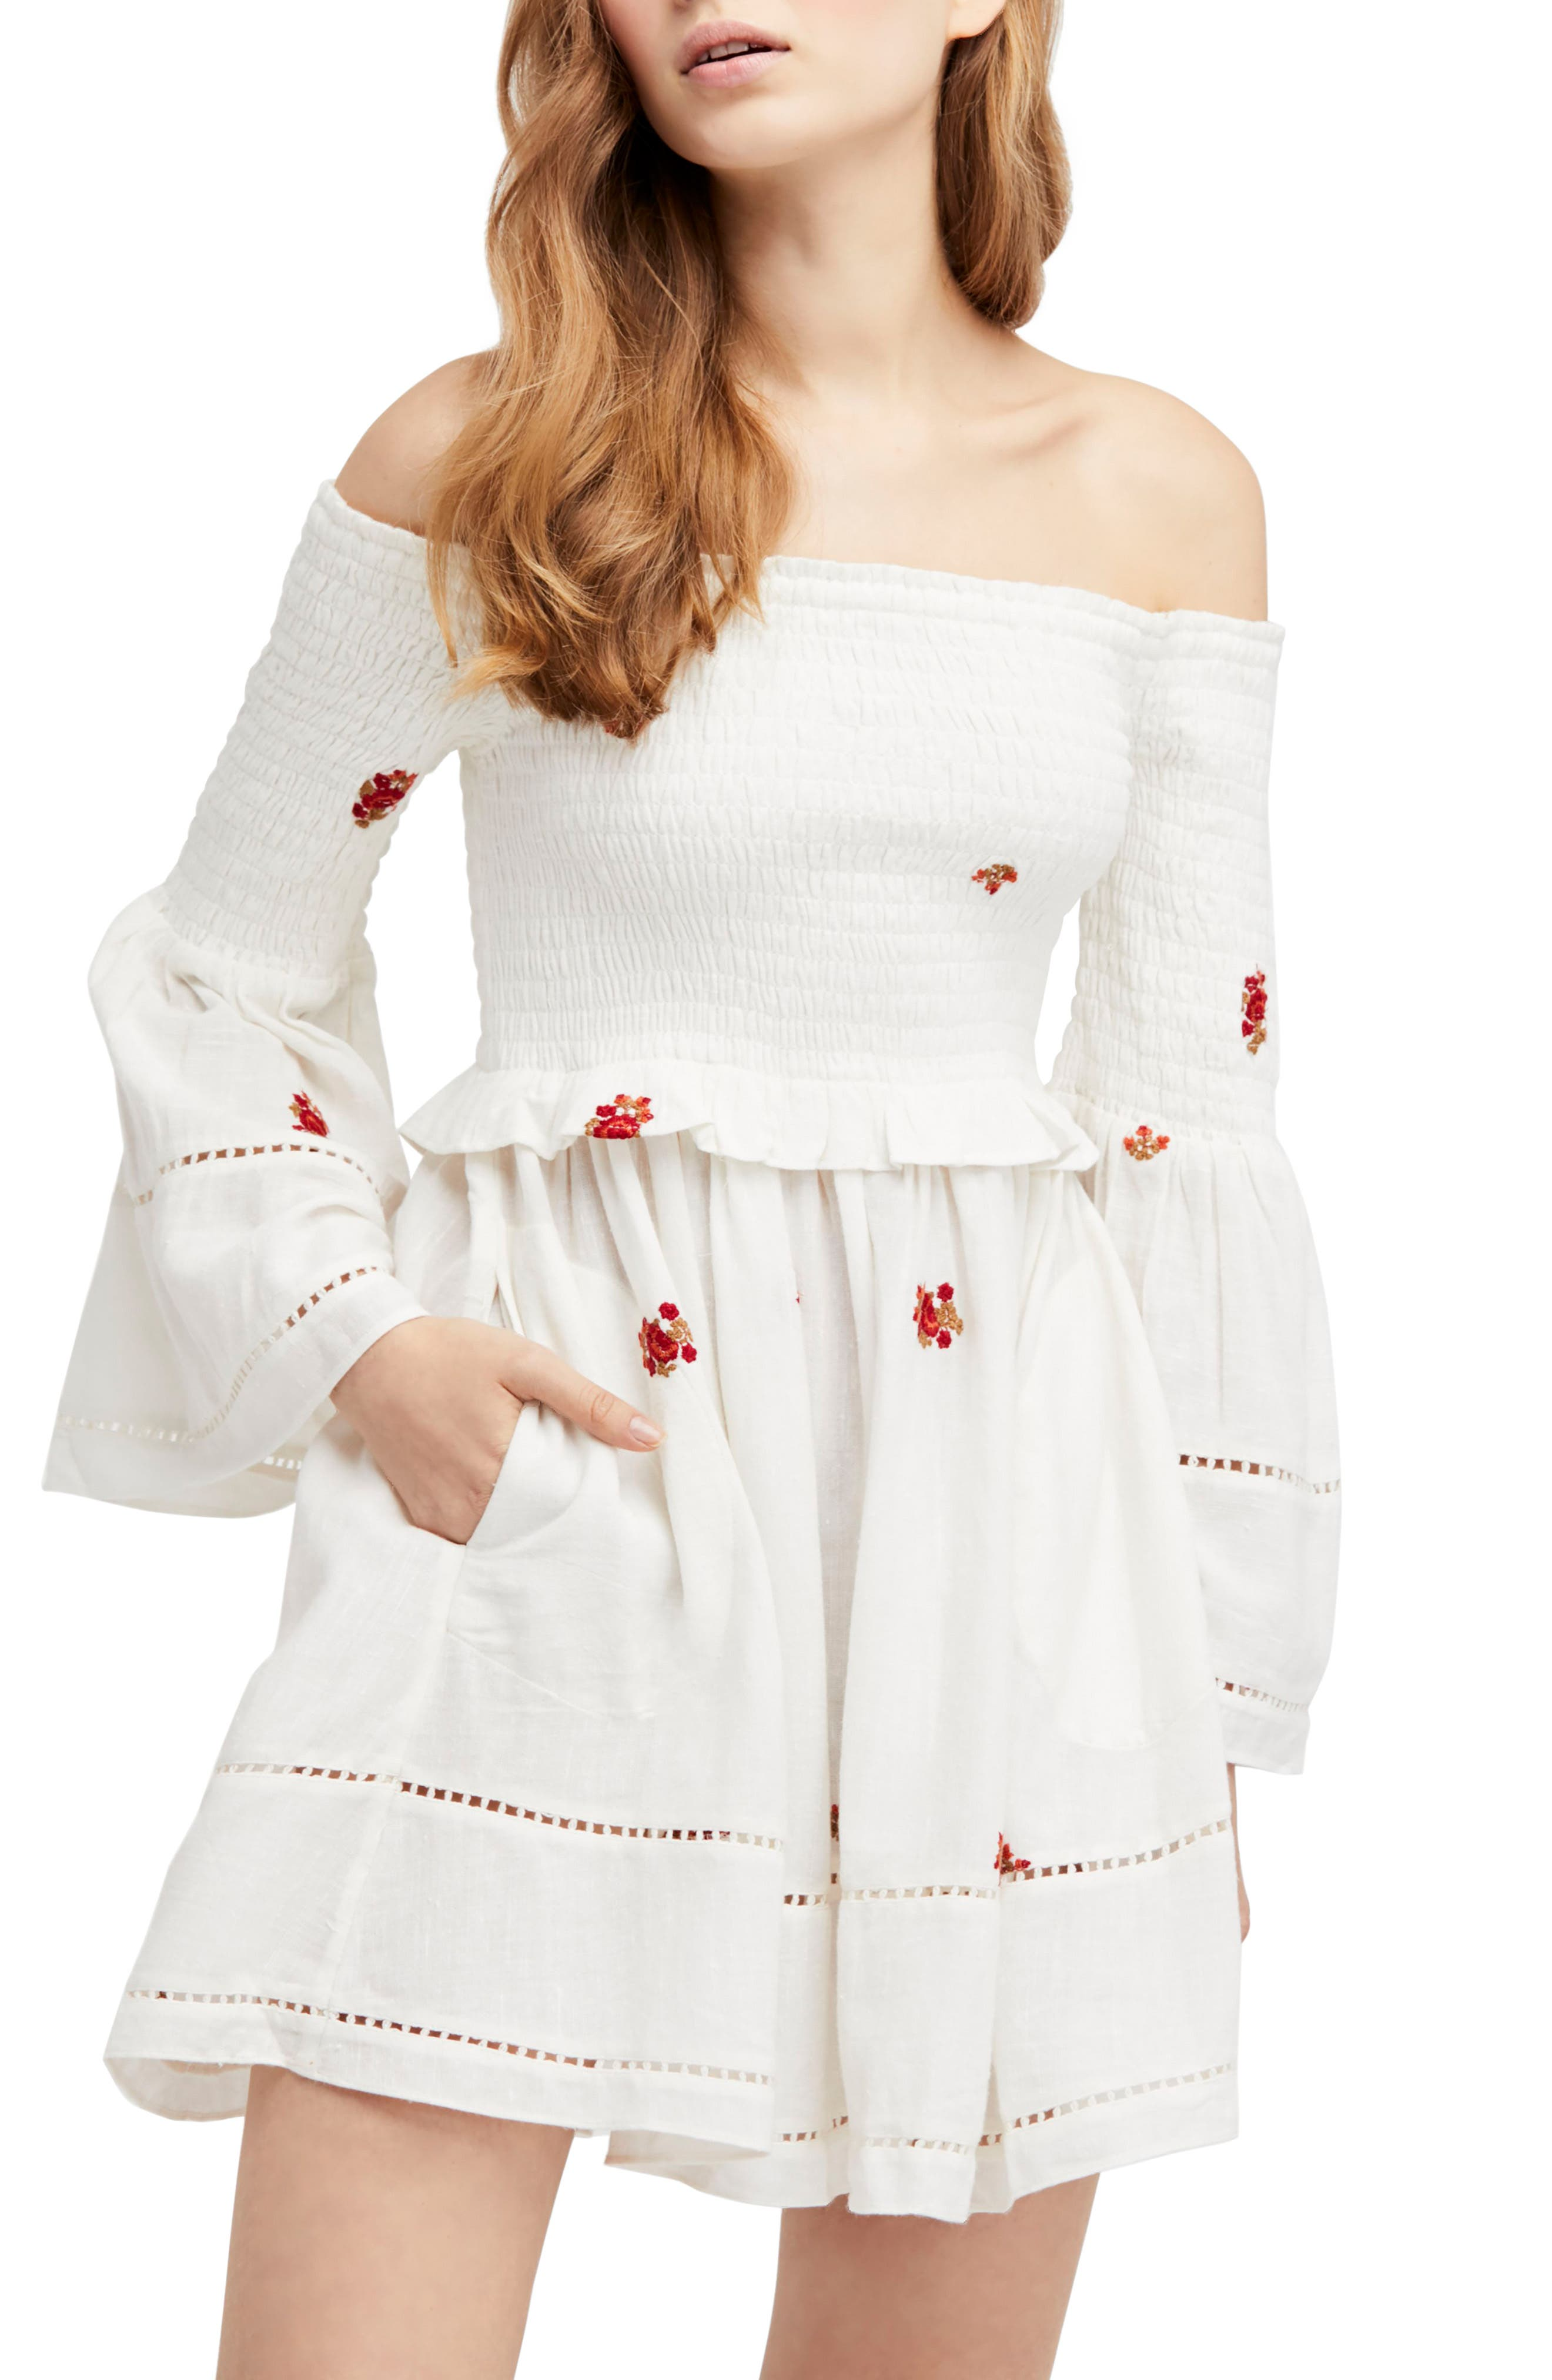 Alternate Image 1 Selected - Free People Counting Daisies Embroidered Off the Shoulder Dress